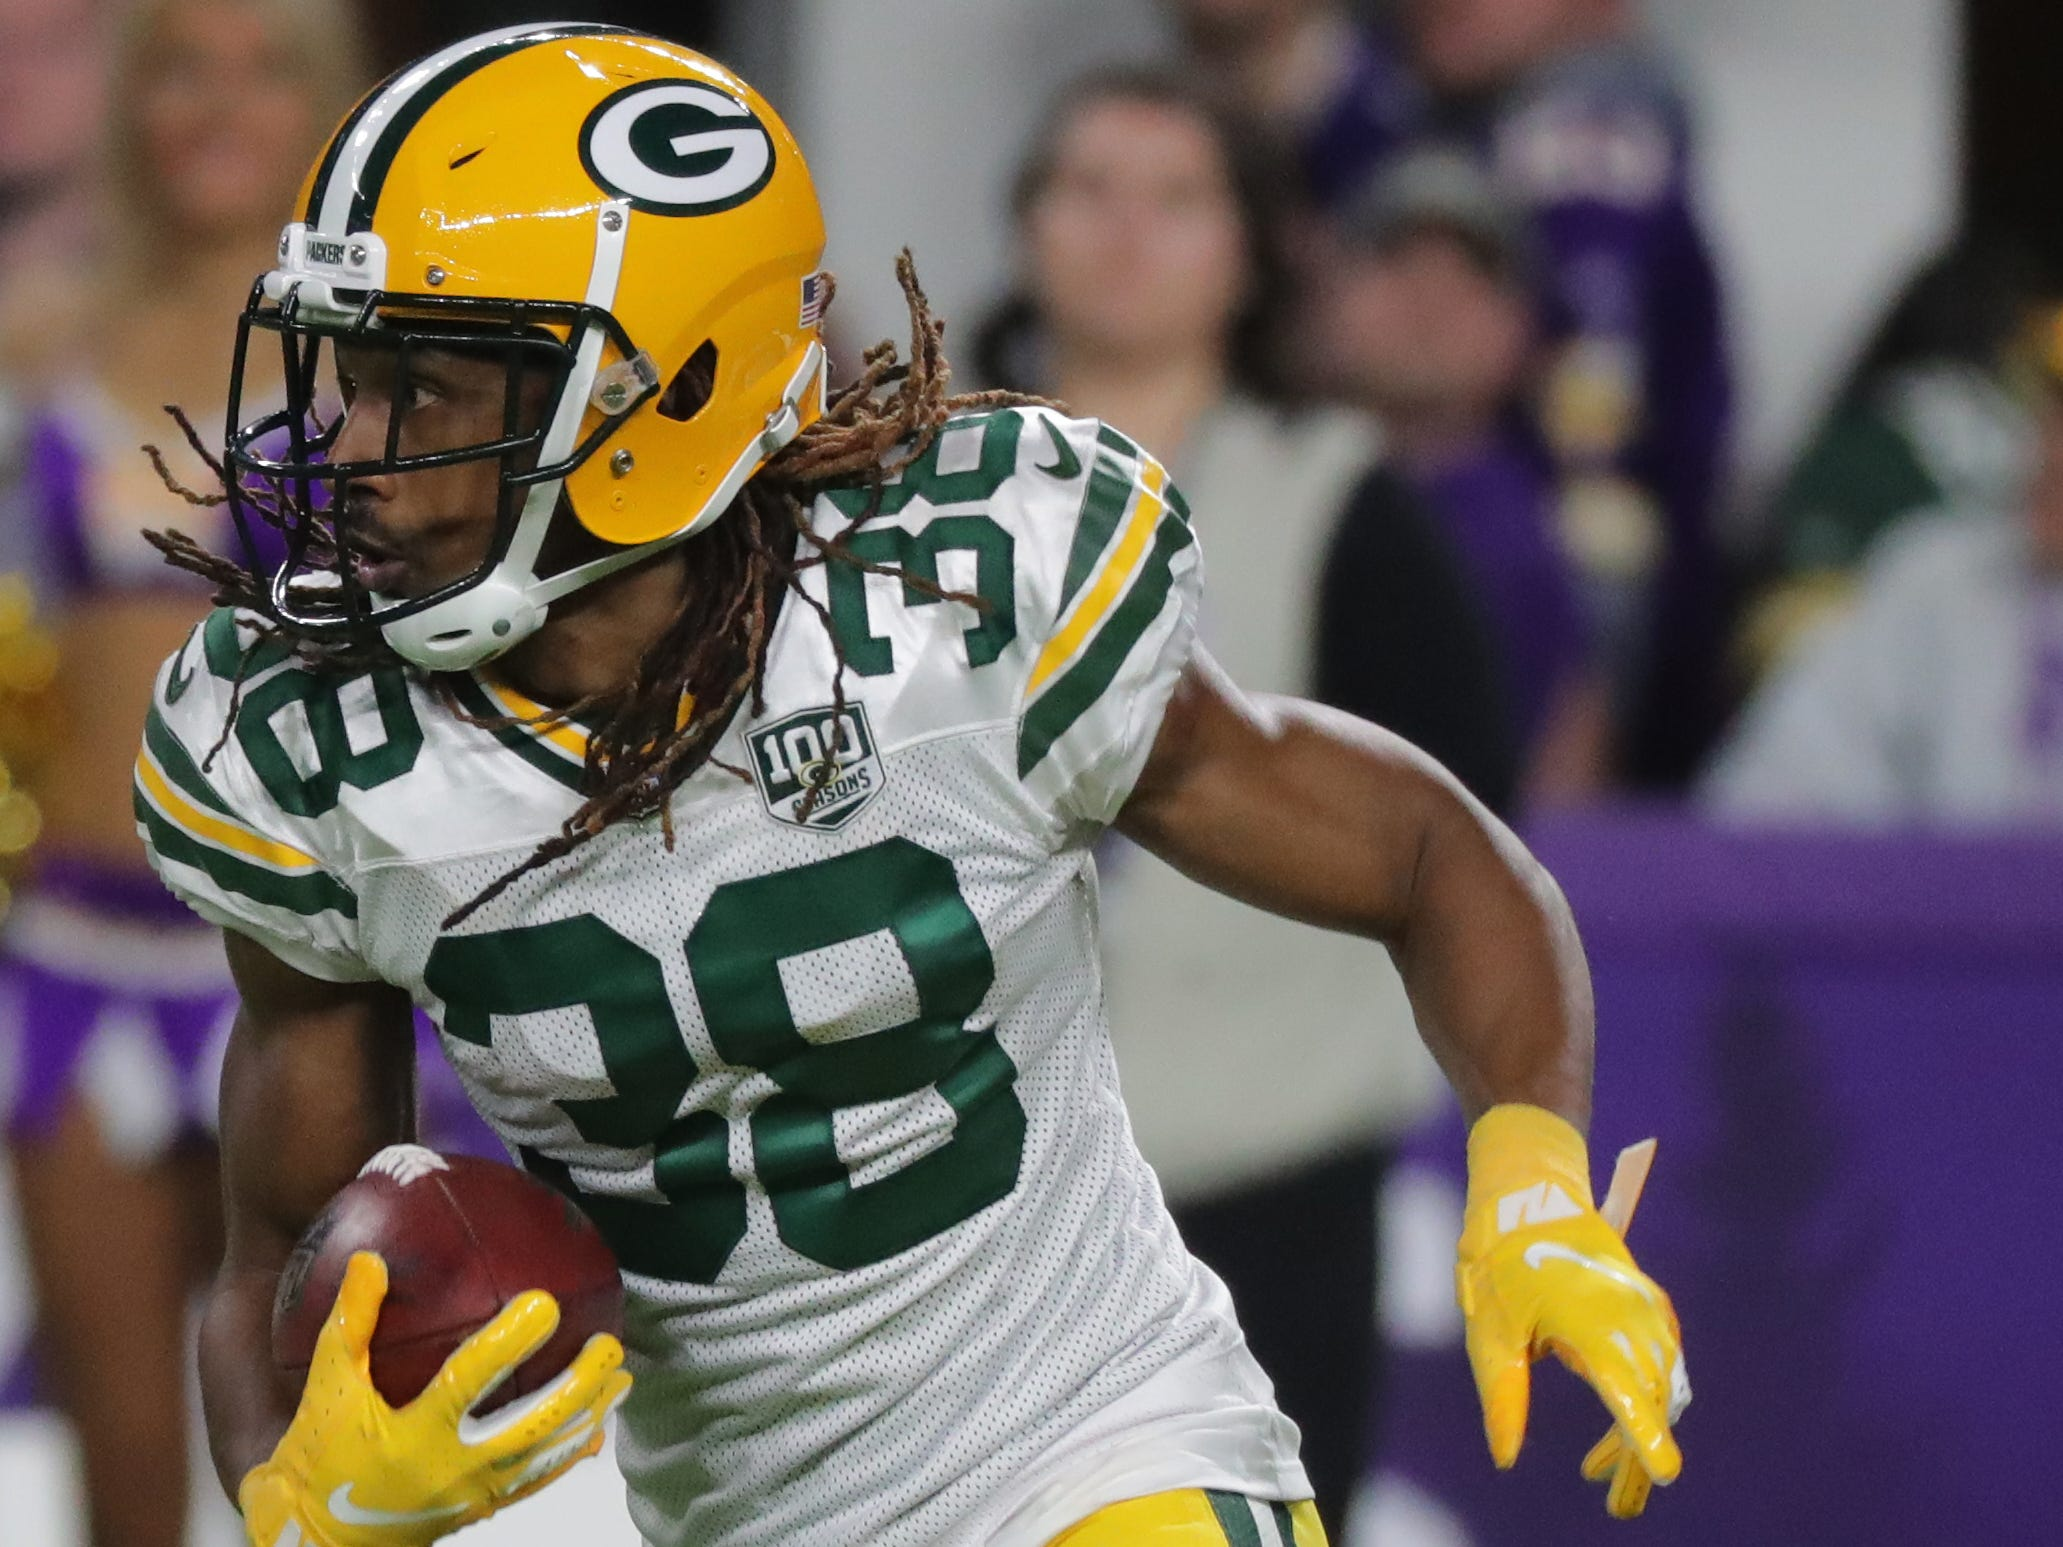 Green Bay Packers cornerback Tramon Williams (38) returns a pigment for 20 yards during the third quarter of their game Sunday, November 25, 2018 at U.S. Bank Stadium in Minneapolis, Minn. The Minnesota Vikings beat the Green Bay Packers 24-17.MARK HOFFMAN/MHOFFMAN@JOURNALSENTINEL.COM